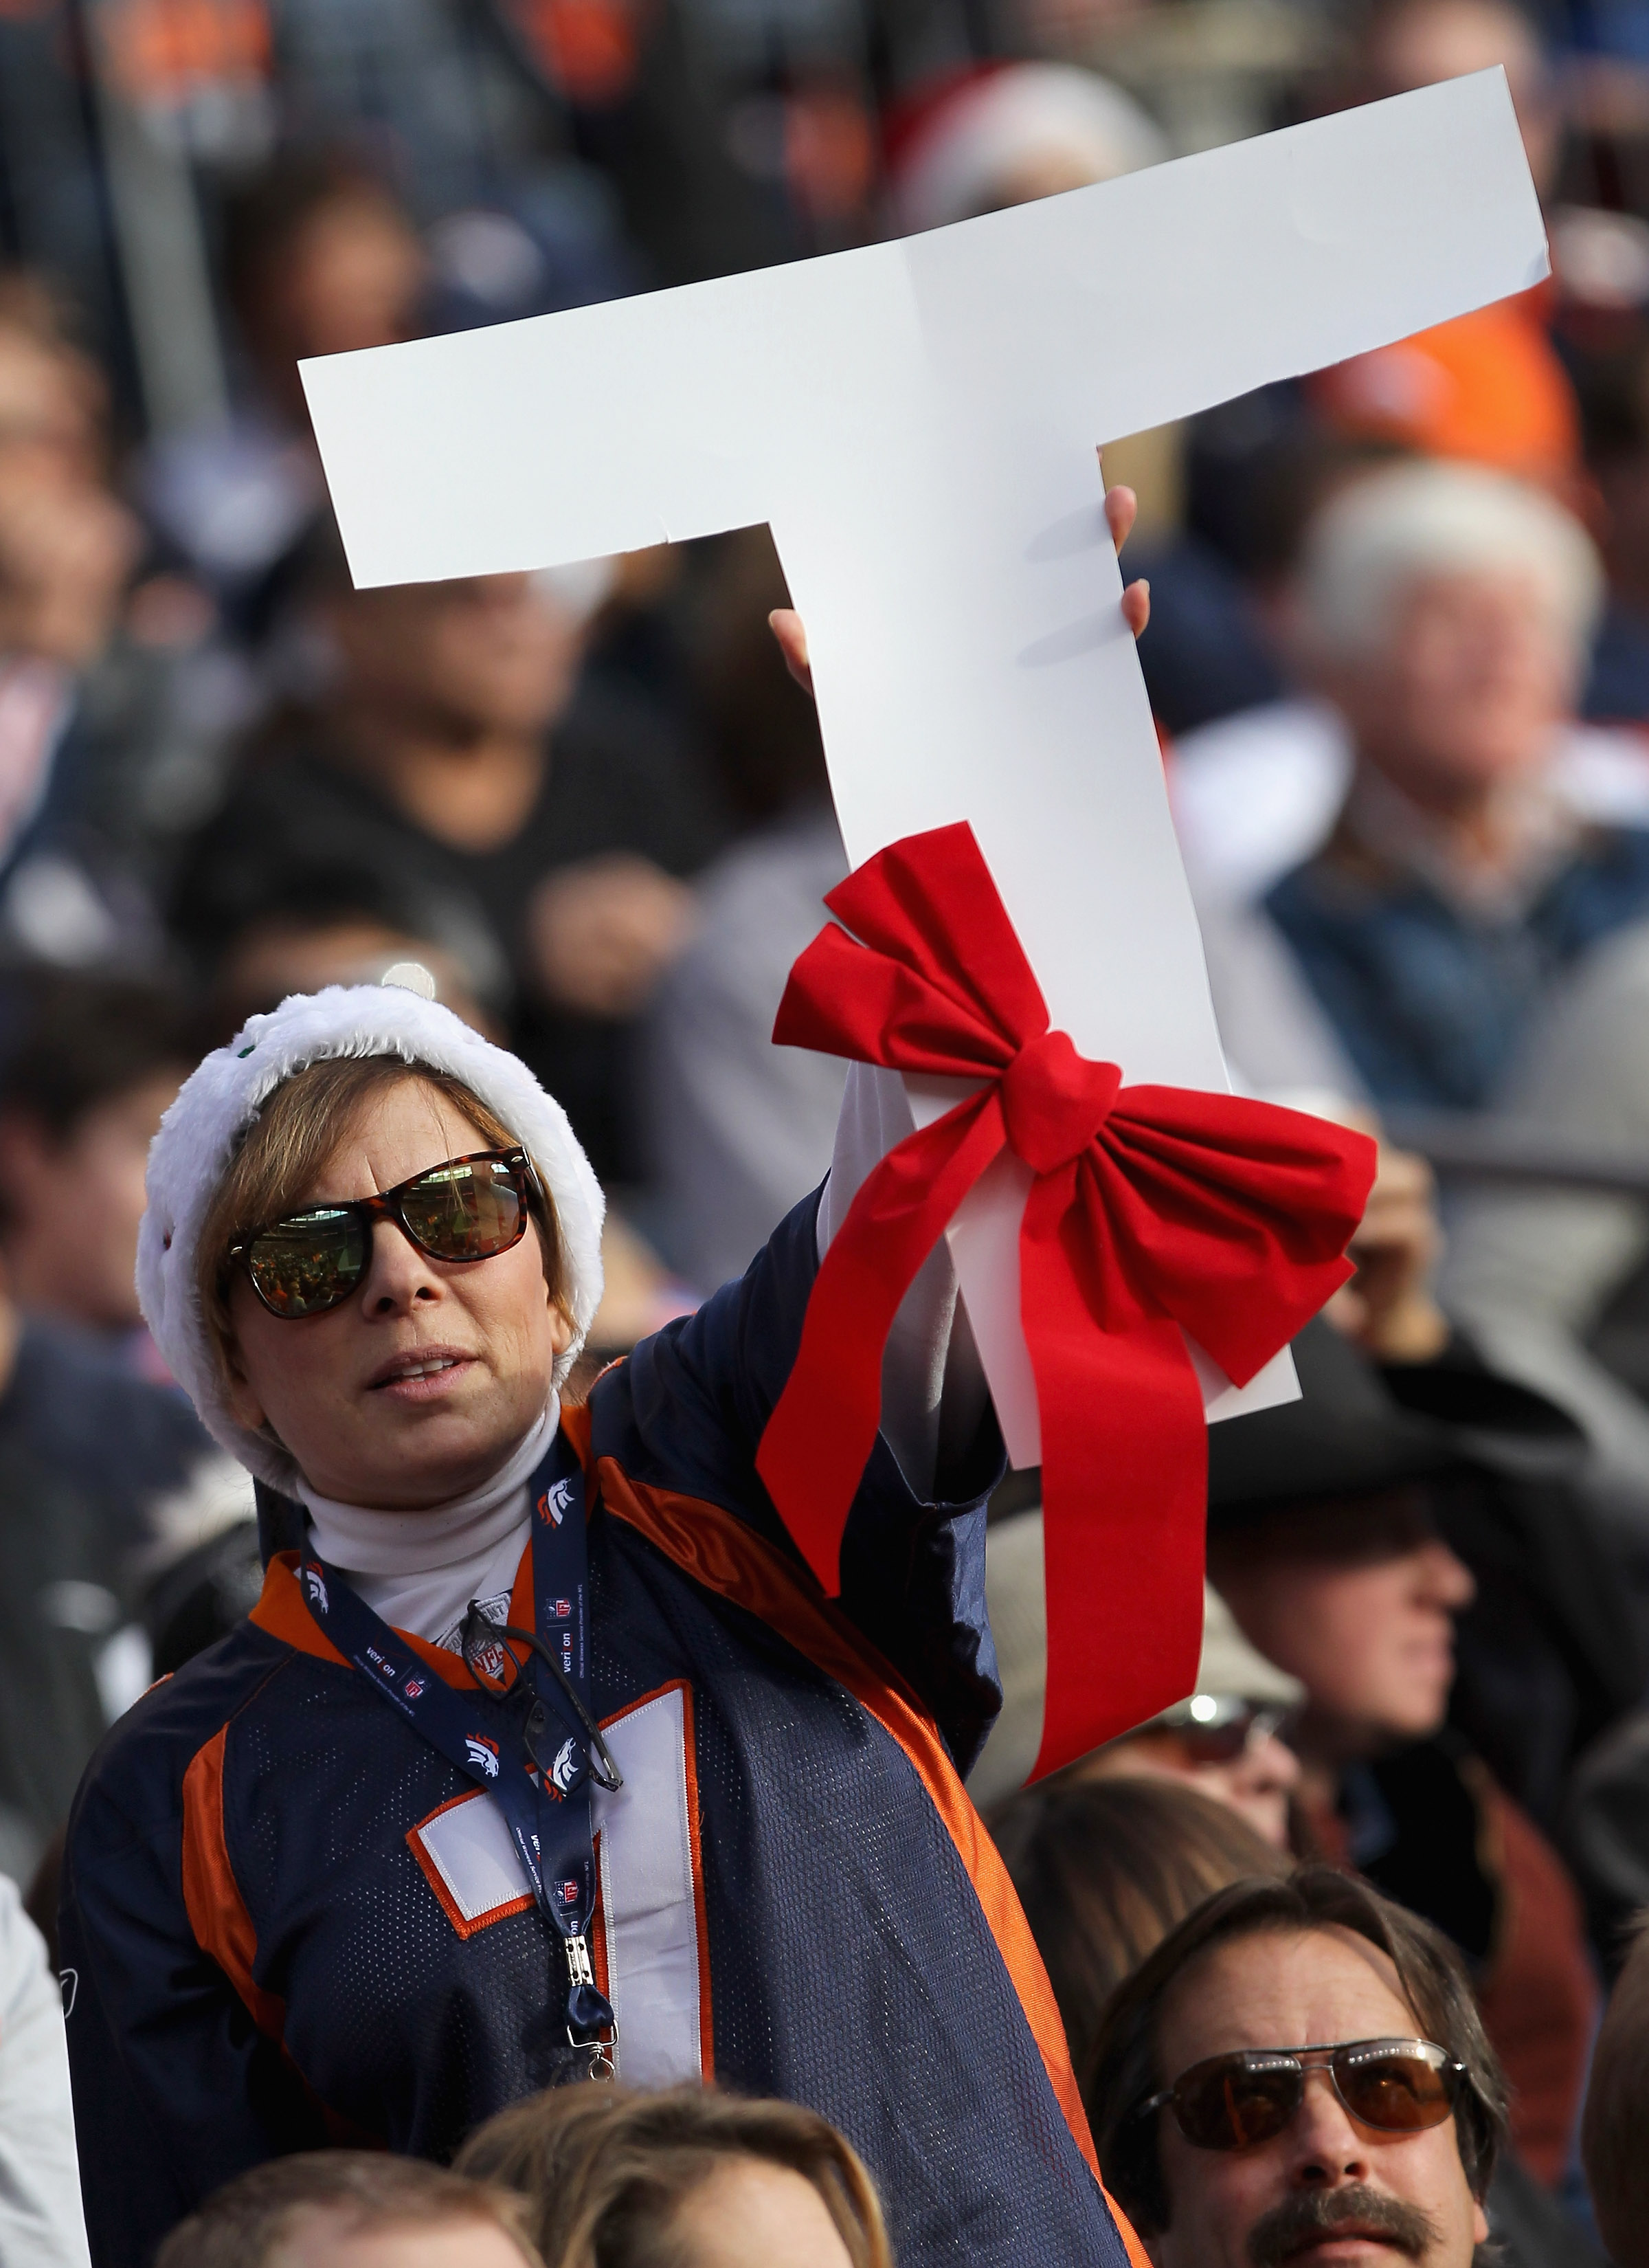 DENVER - DECEMBER 26:  A fan shows her support of Tim Tebow of the Denver Broncos against the Houston Texas at INVESCO Field at Mile High on December 26, 2010 in Denver, Colorado.  (Photo by Doug Pensinger/Getty Images)